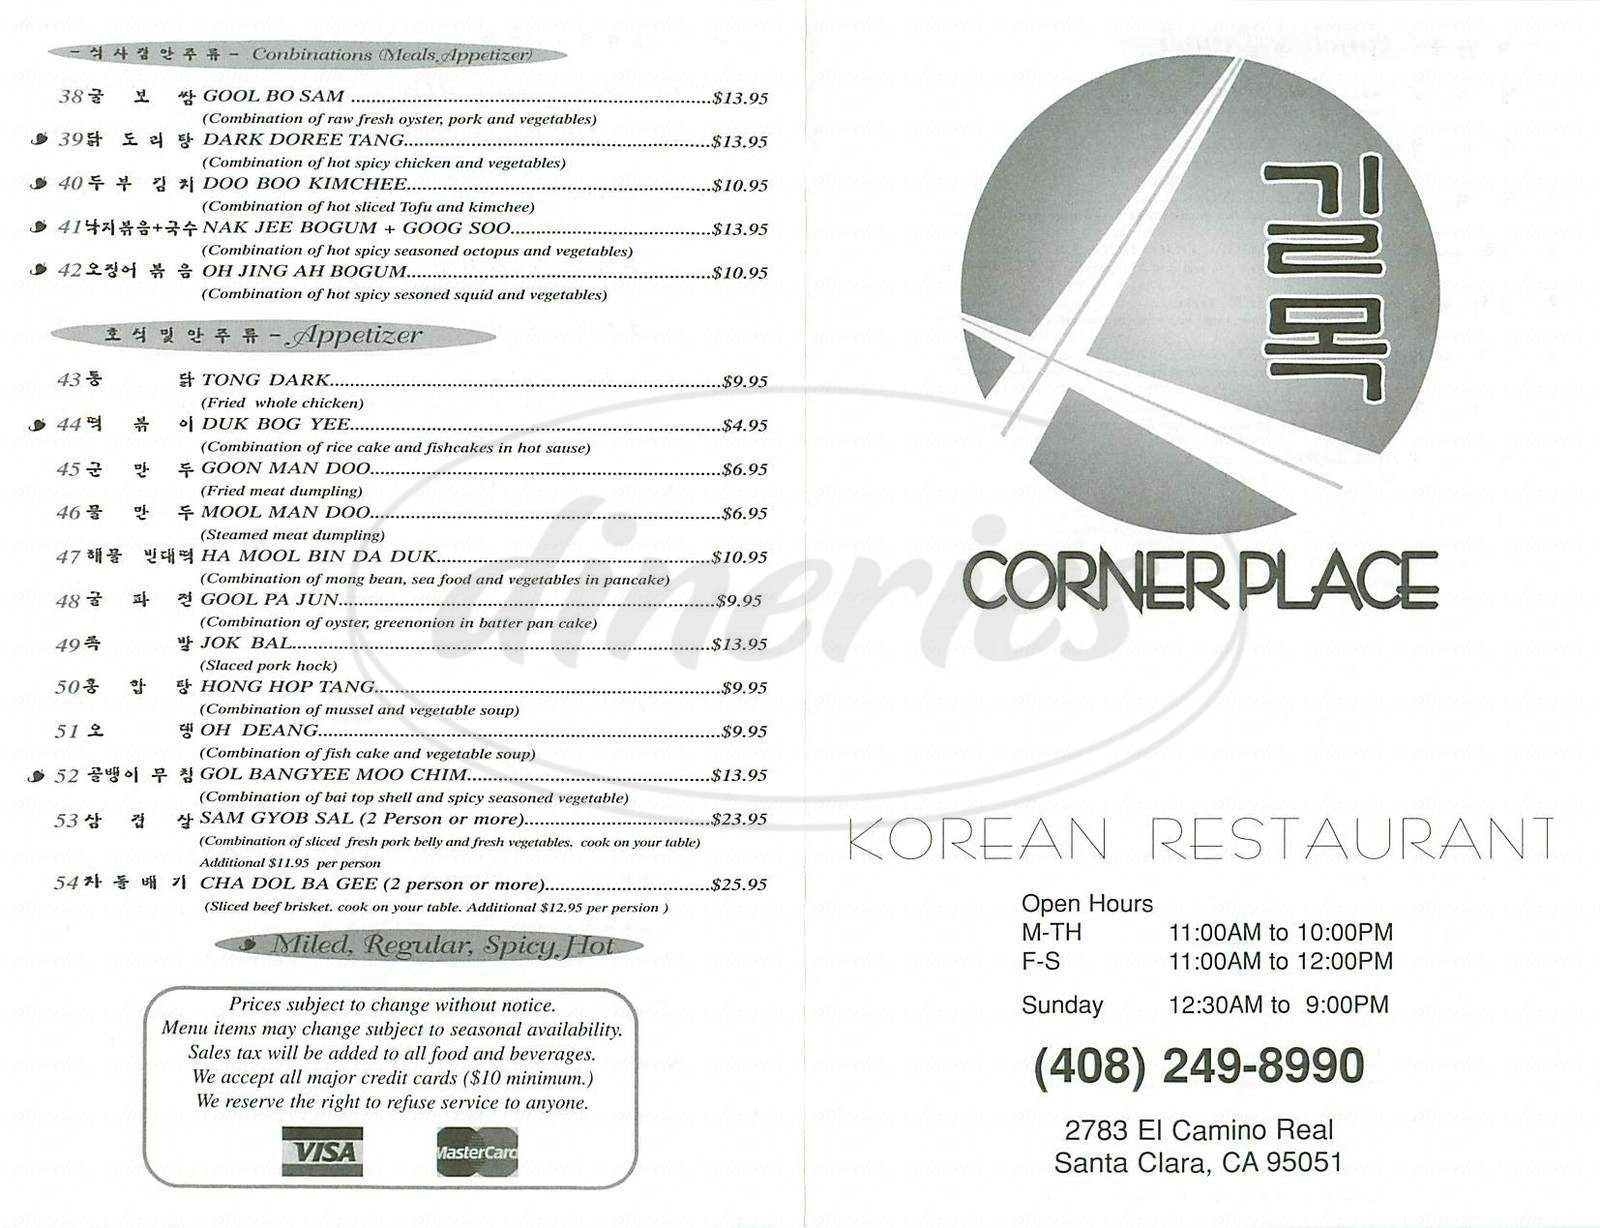 menu for Corner Place Korean Restaurant